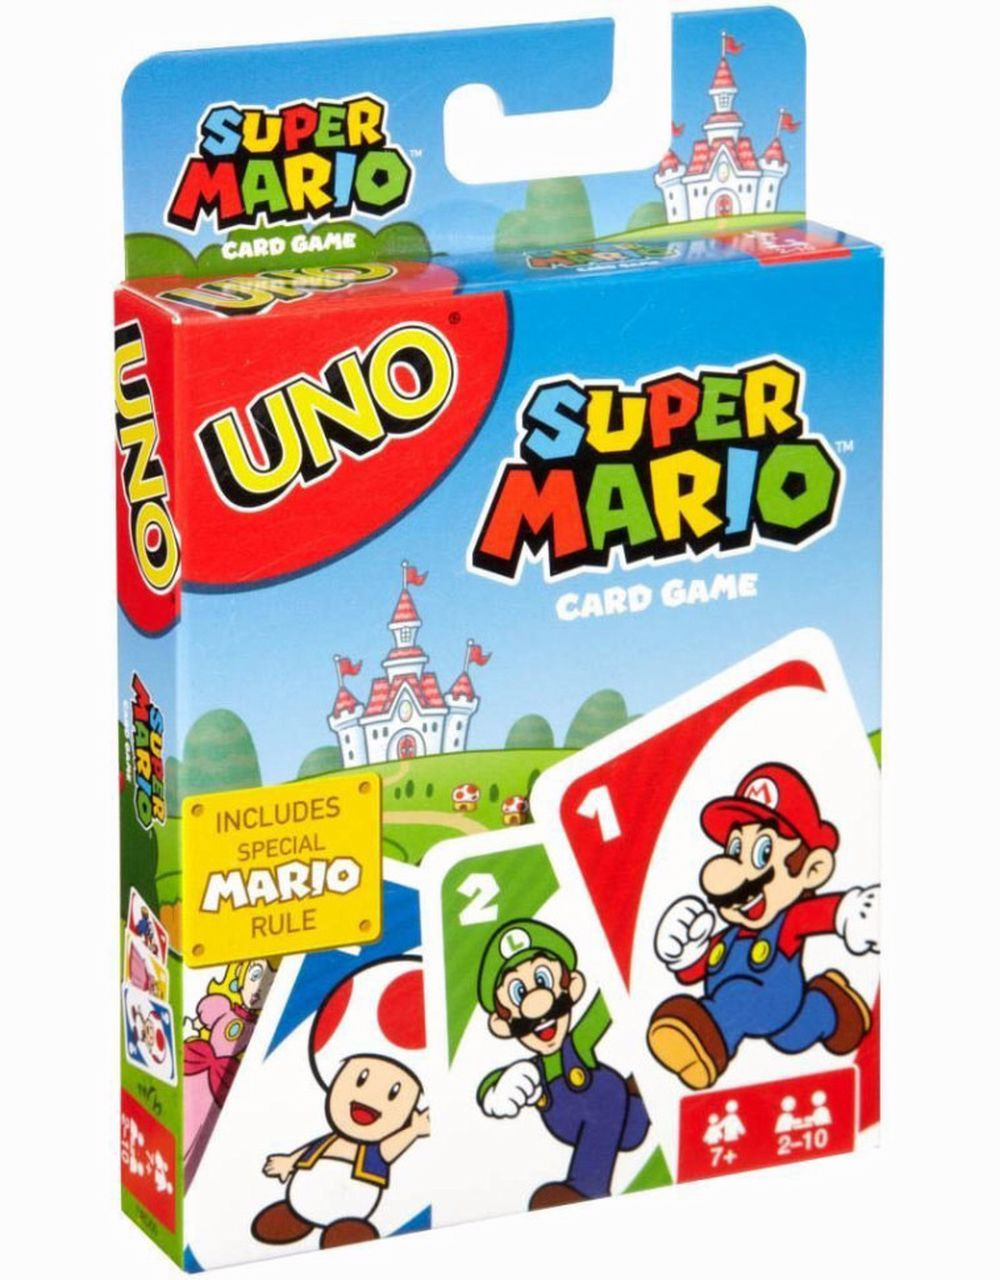 super_mario_uno_box.jpg